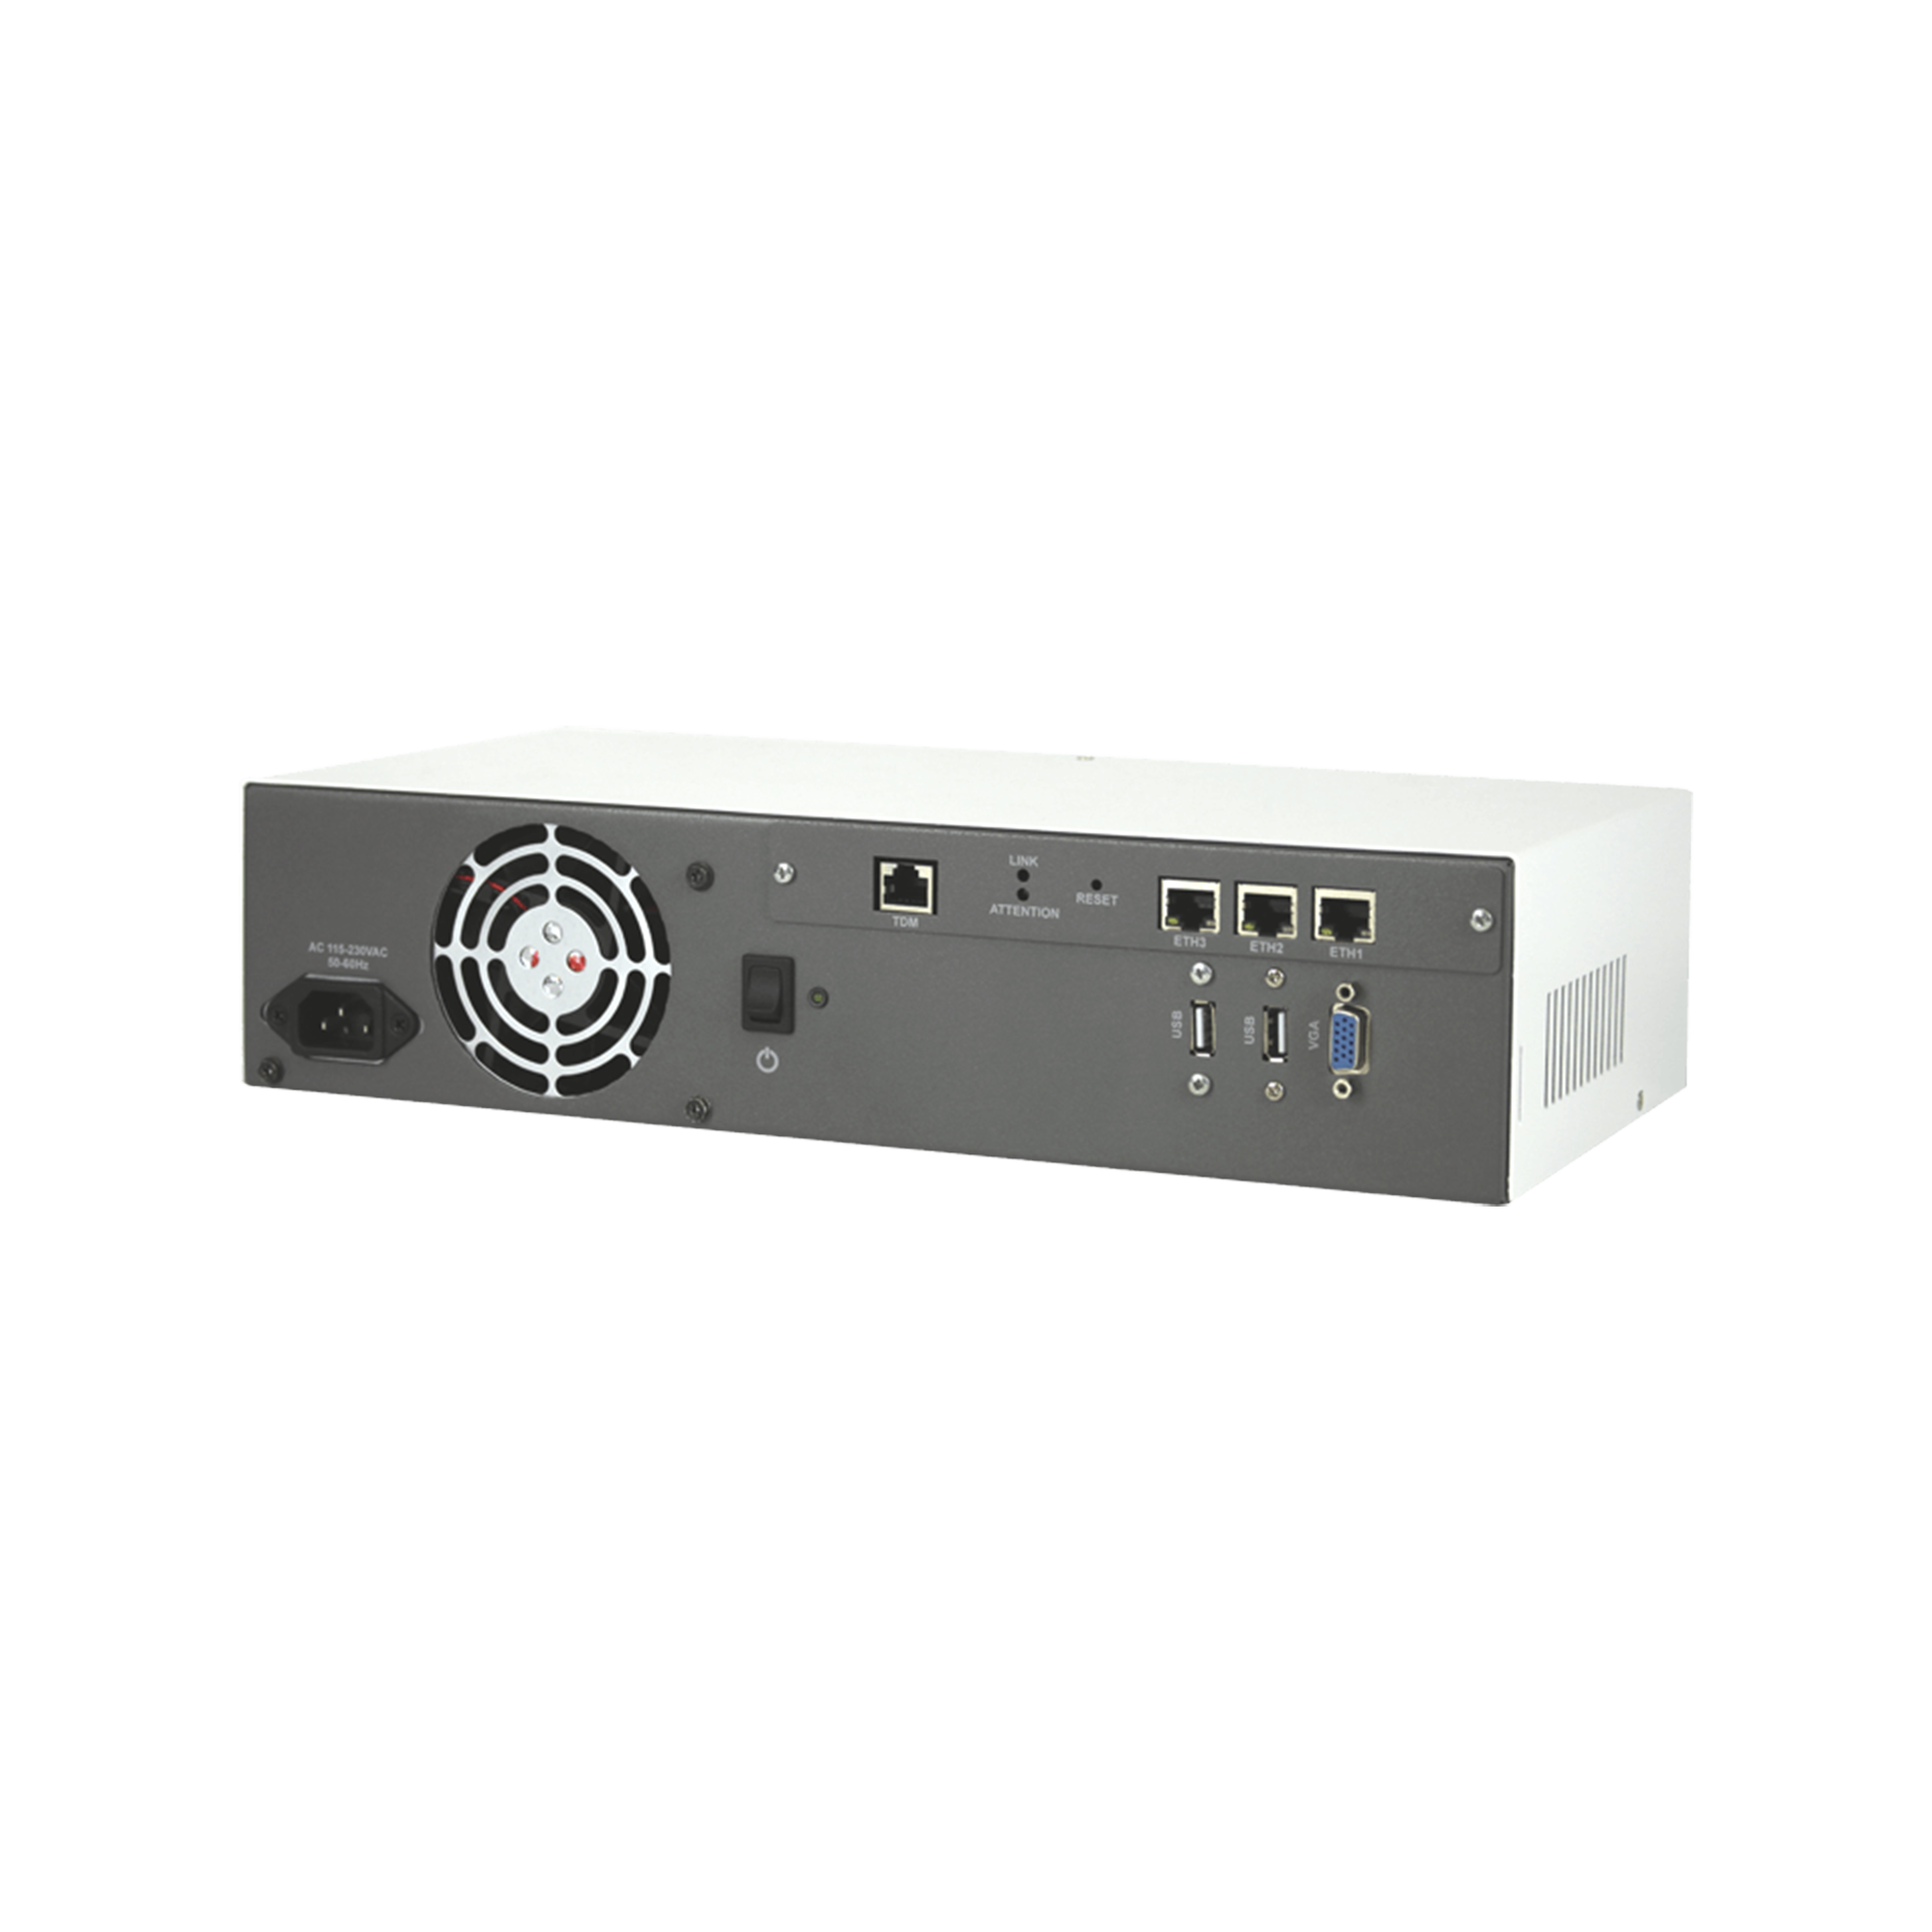 Servidor para IP-PBX integrado con 1 E1/T1, 30 canales VoIP, ideal para instalar 3CX